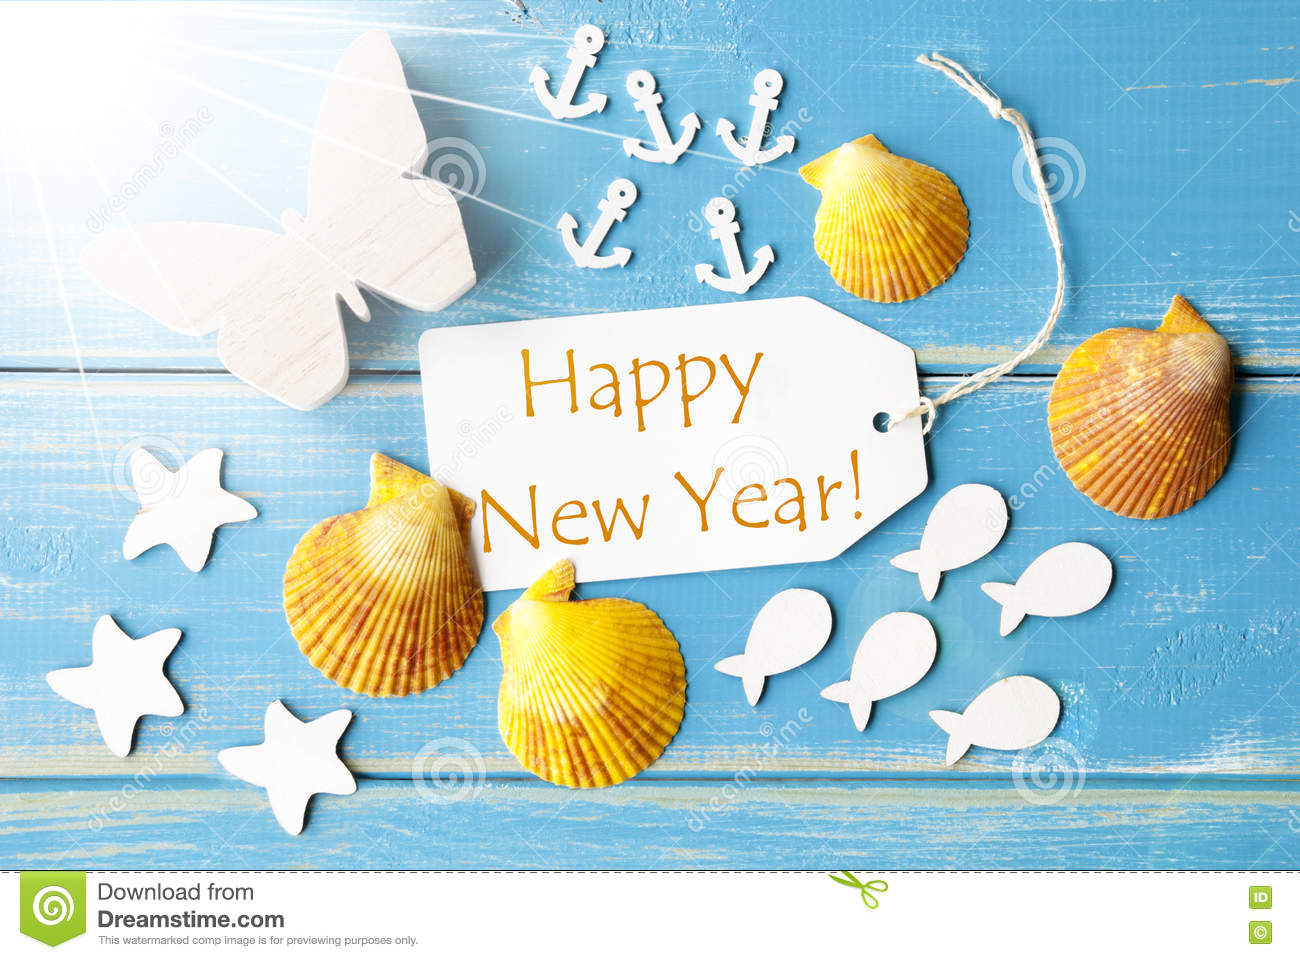 Sunny summer greeting card with text happy new year stock image download sunny summer greeting card with text happy new year stock image image of label m4hsunfo